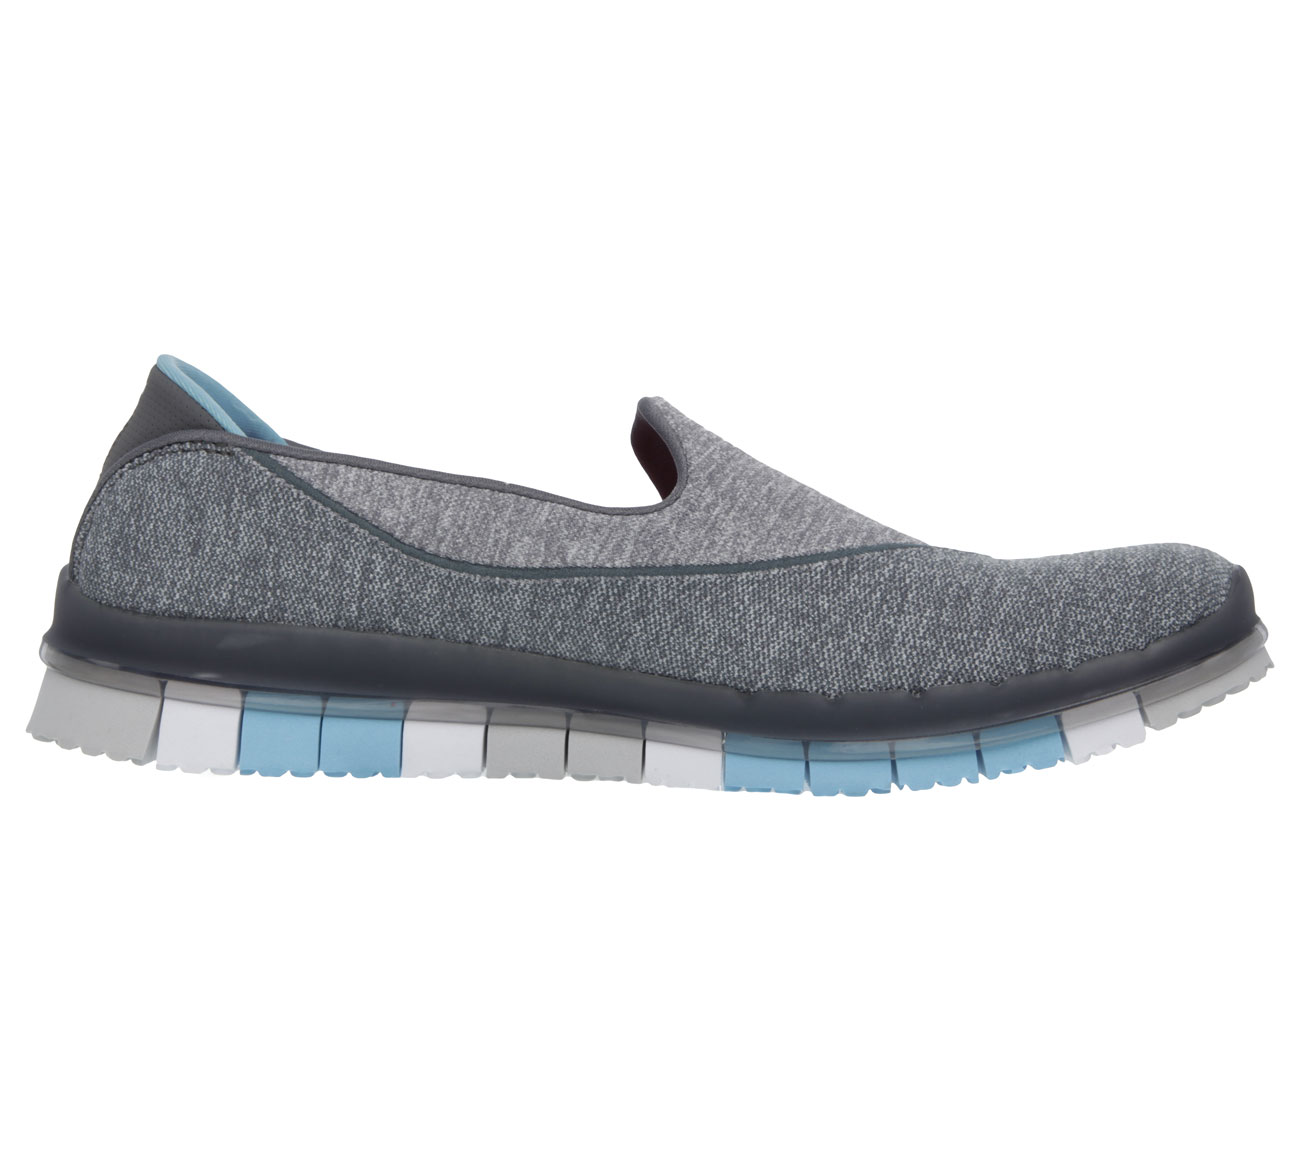 Skechers-Go Flex Slip On-CCBL-$149.90